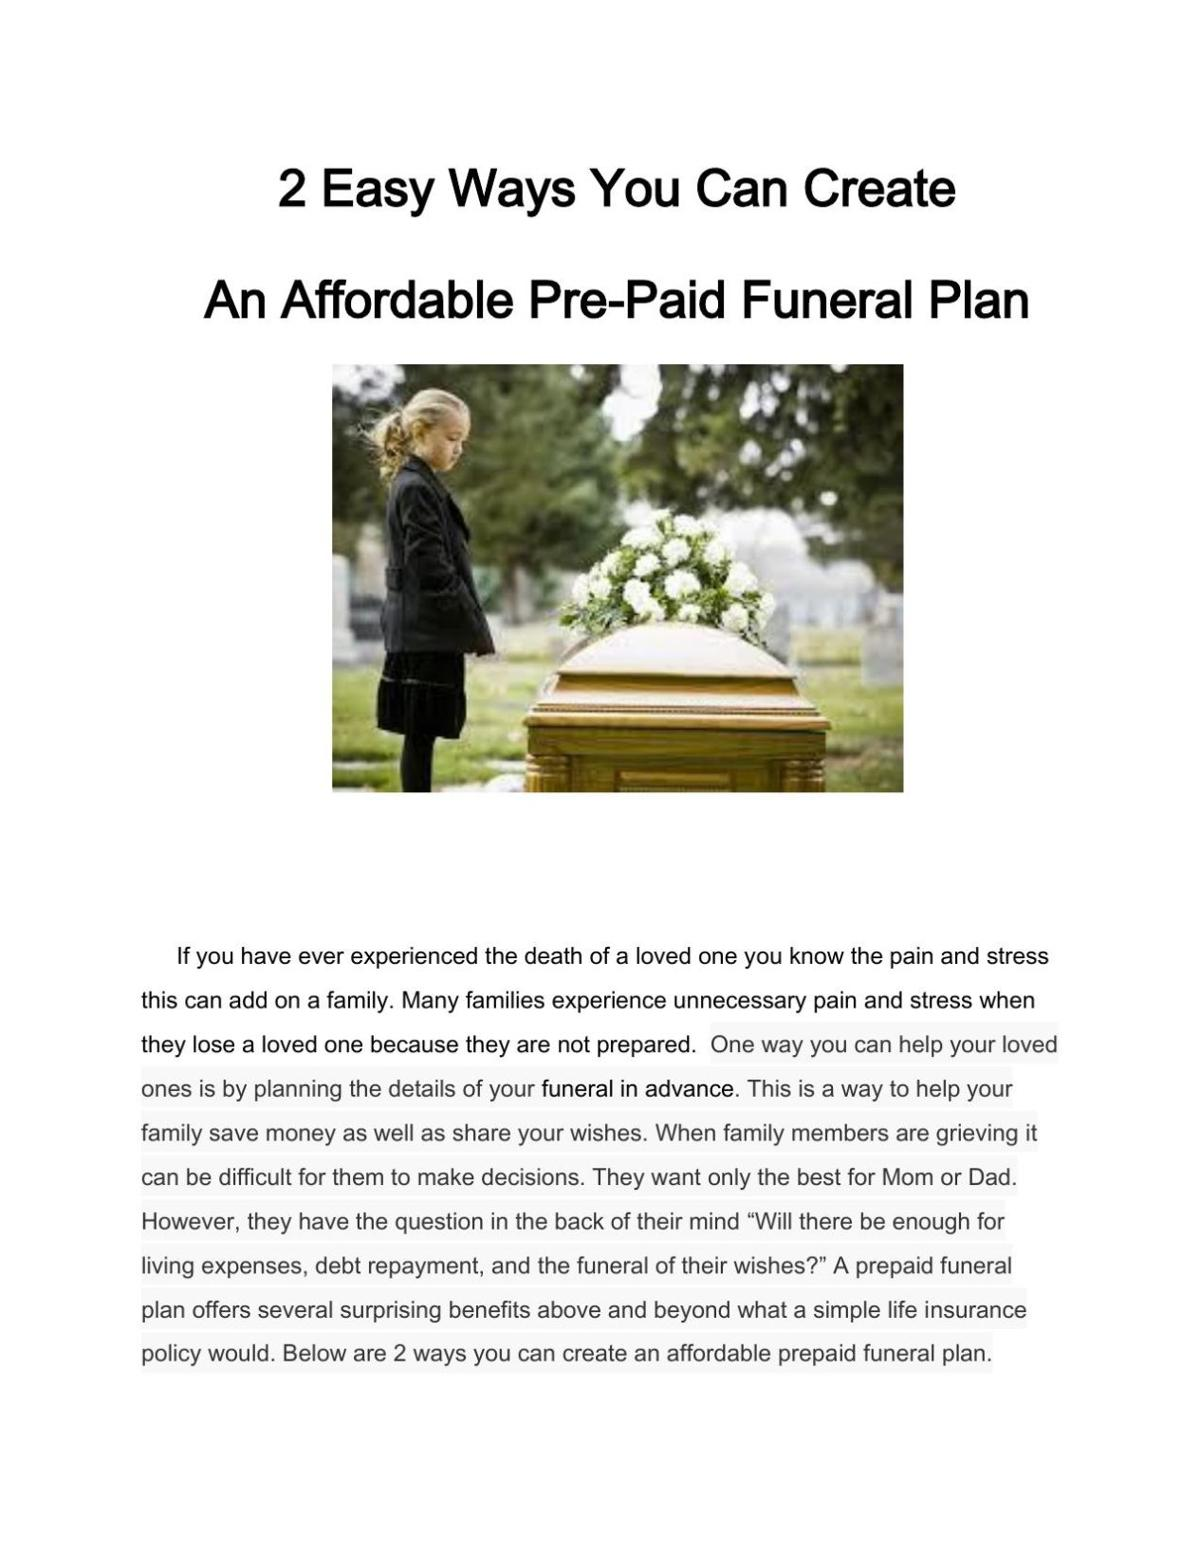 2 Easy Ways You Can Create An Affordable Pre-Paid Funeral Plan